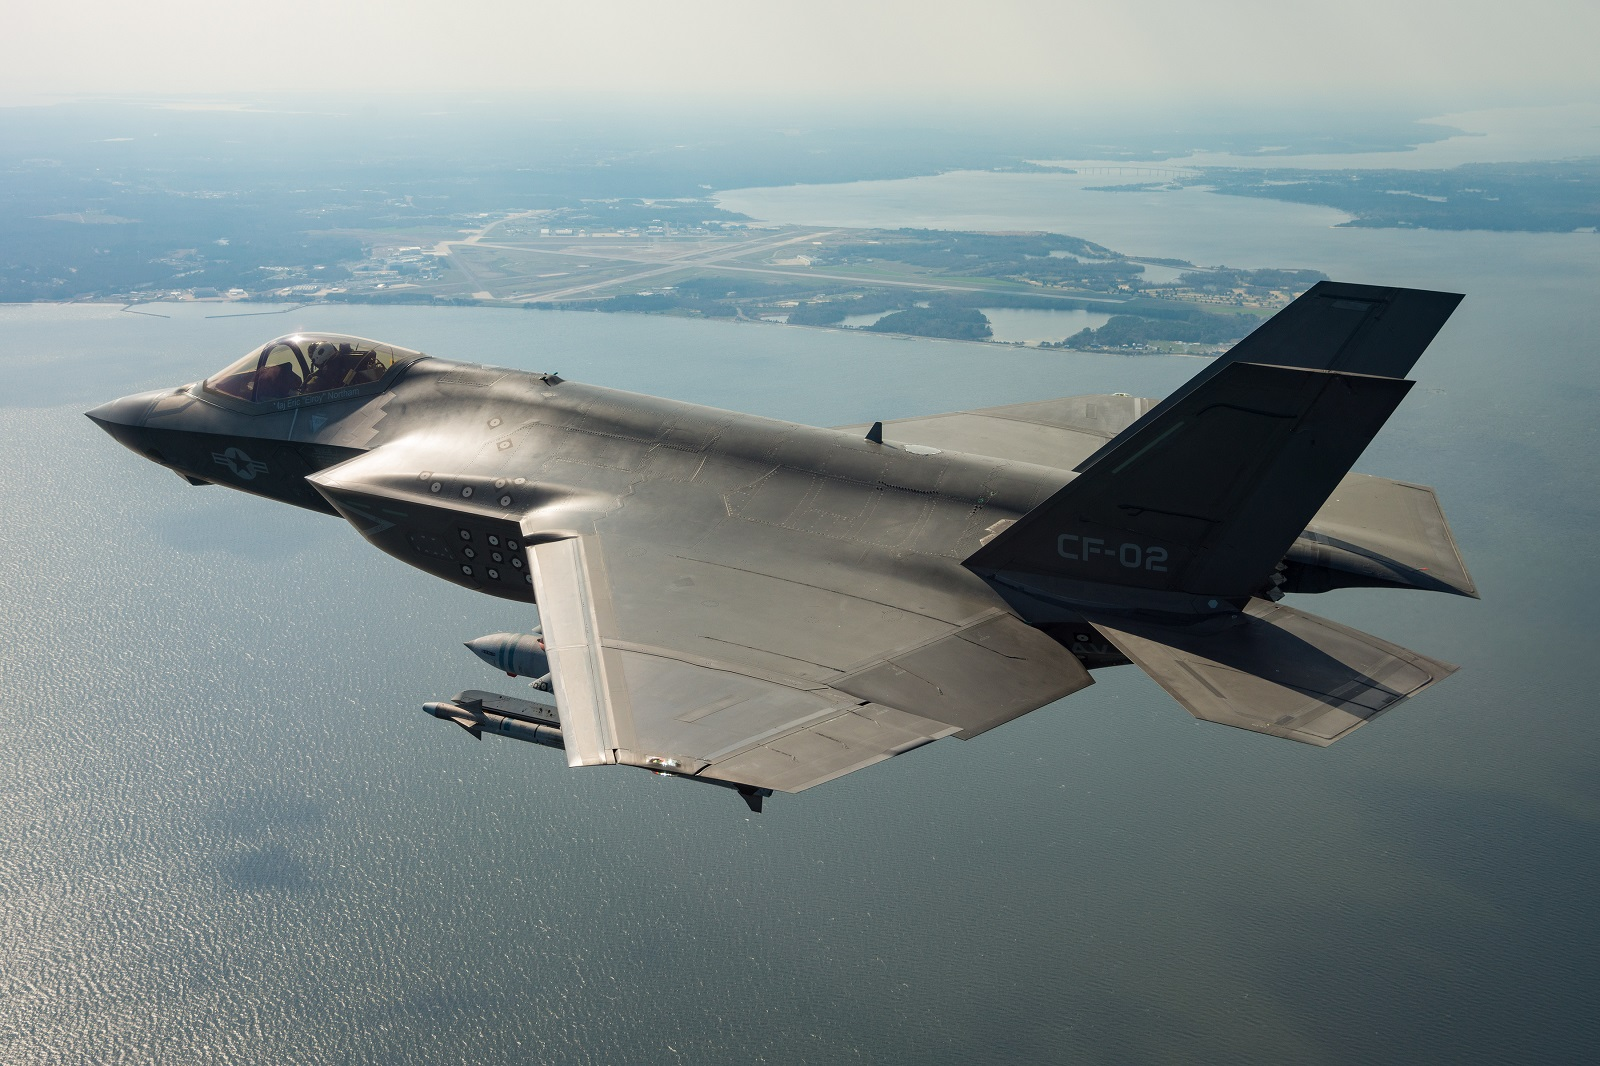 F-35s, Lasers, Drones and More: The U.S. Military's Missile-Defense Plan Won't Work